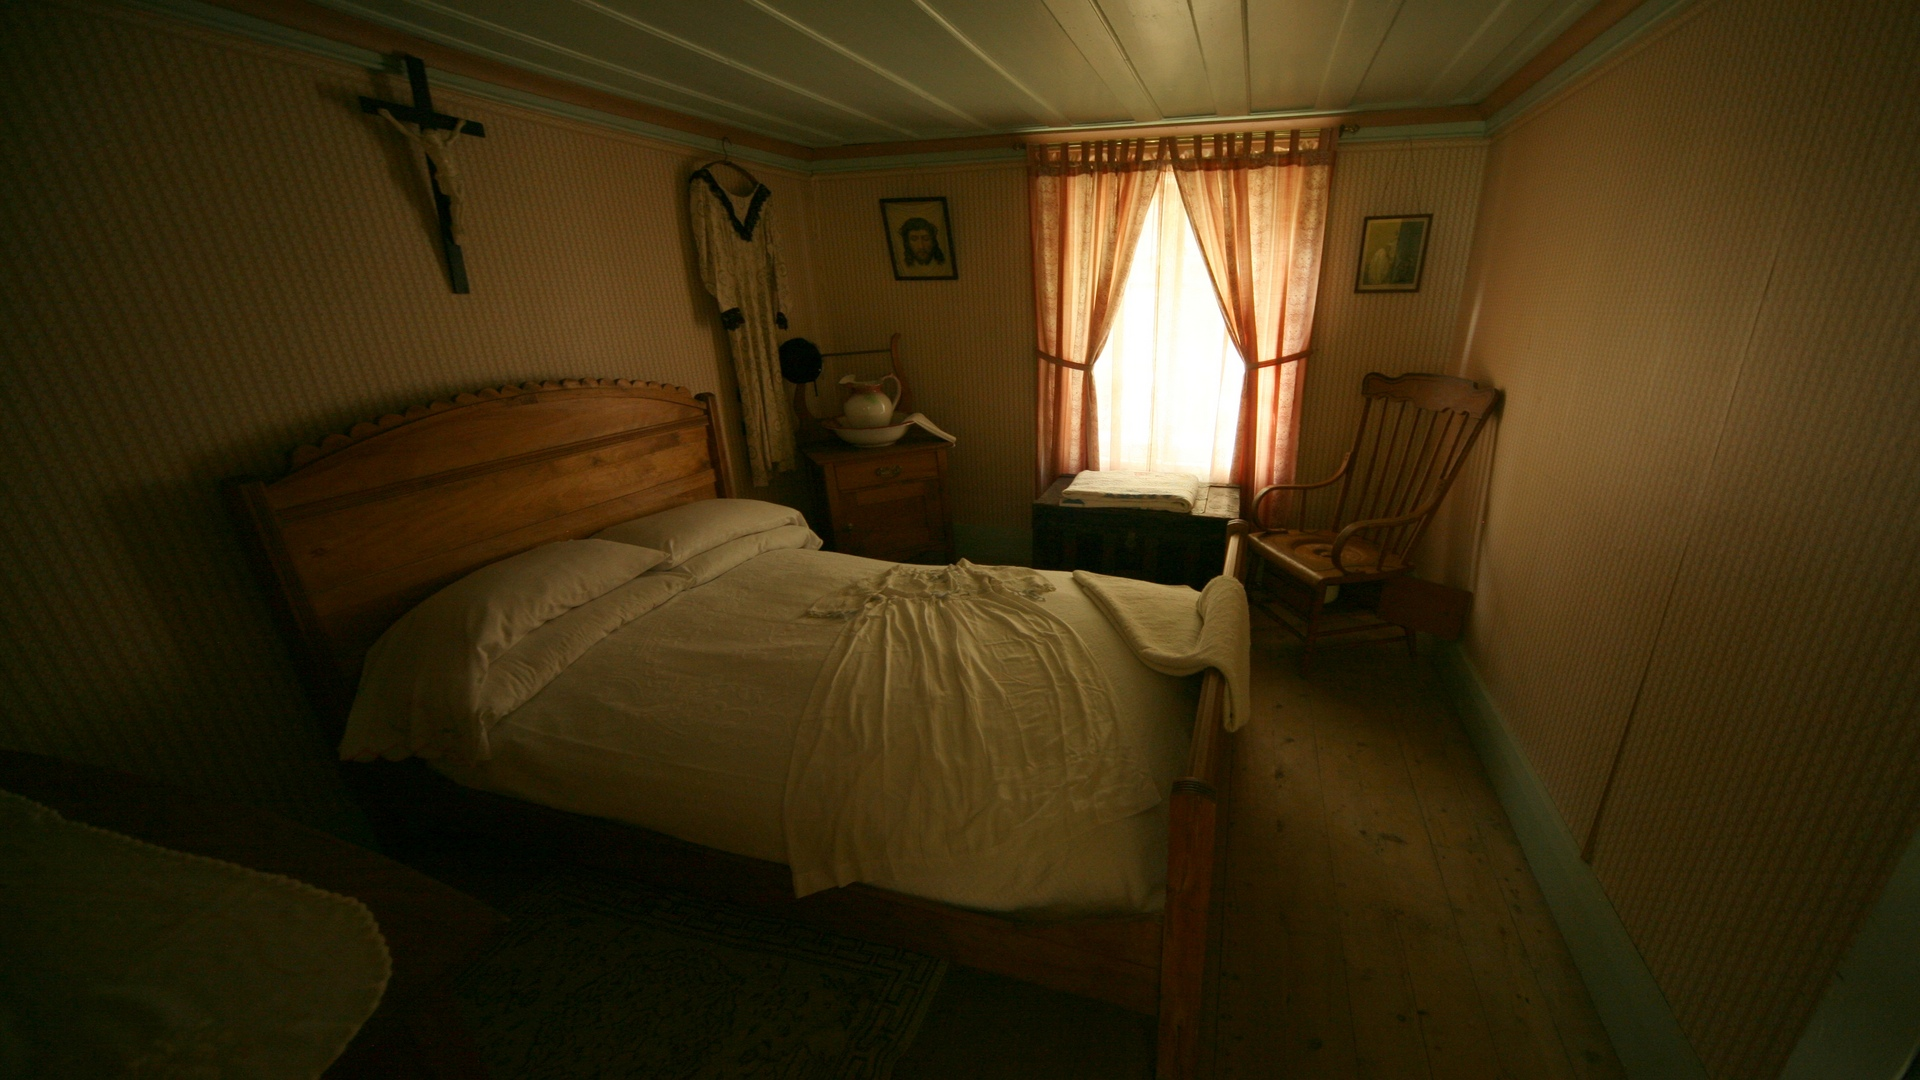 Une autre chambre d 39 poque another room old style flickr for Chambre d autre